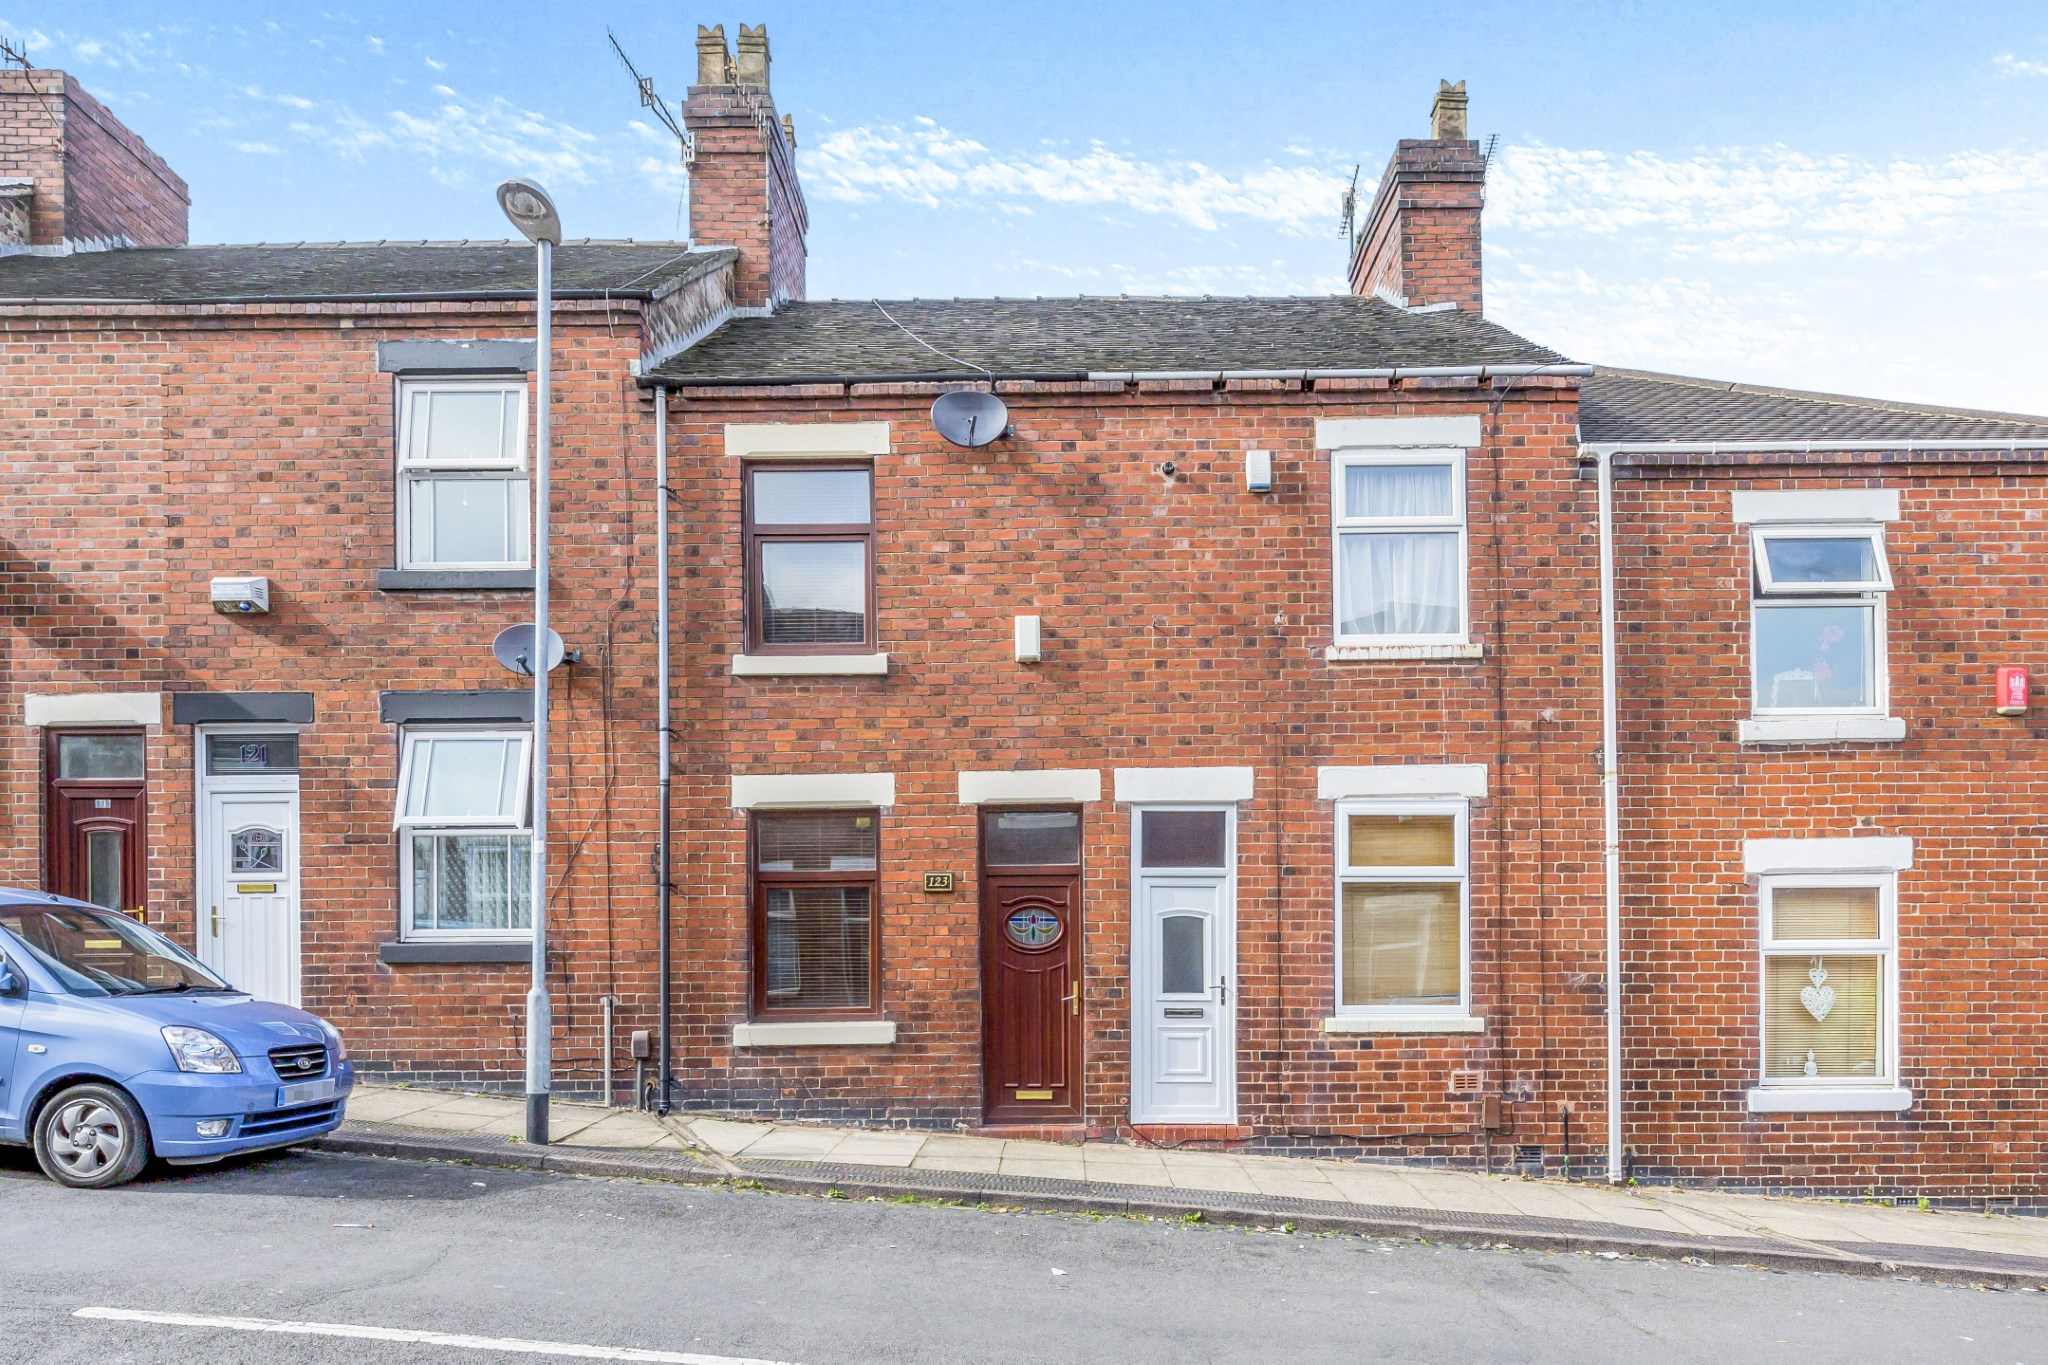 Staffordshire, 2 bedrooms